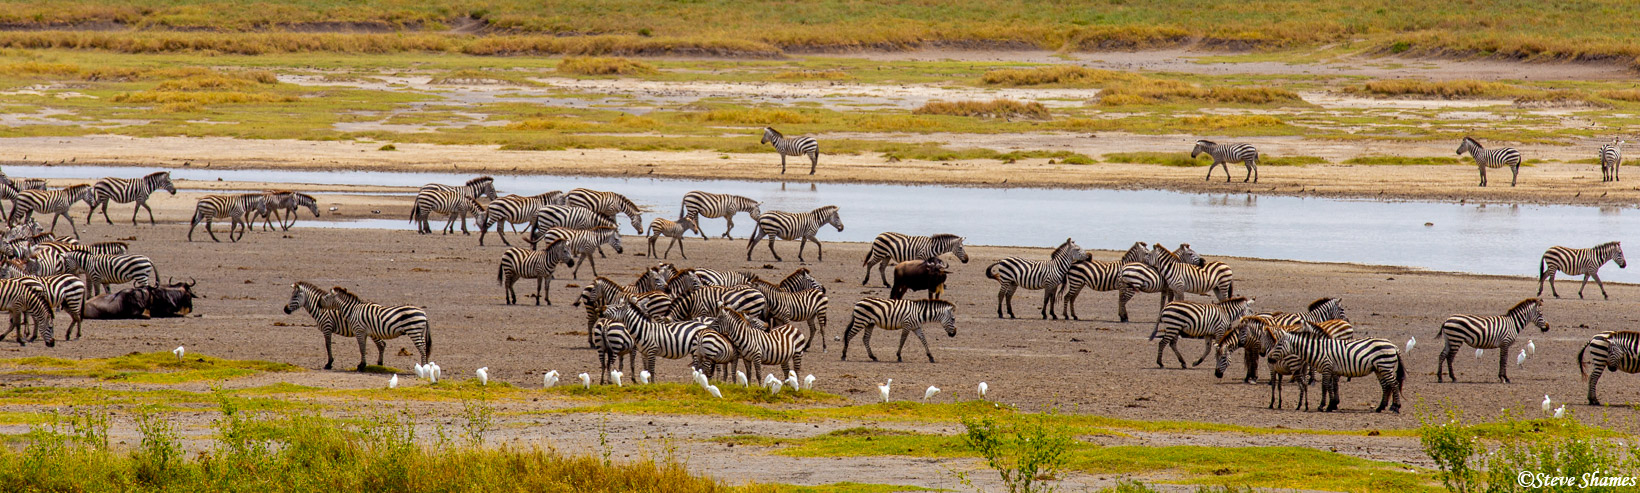 serengeti, national park, tanzania, zebra waterhole, photo